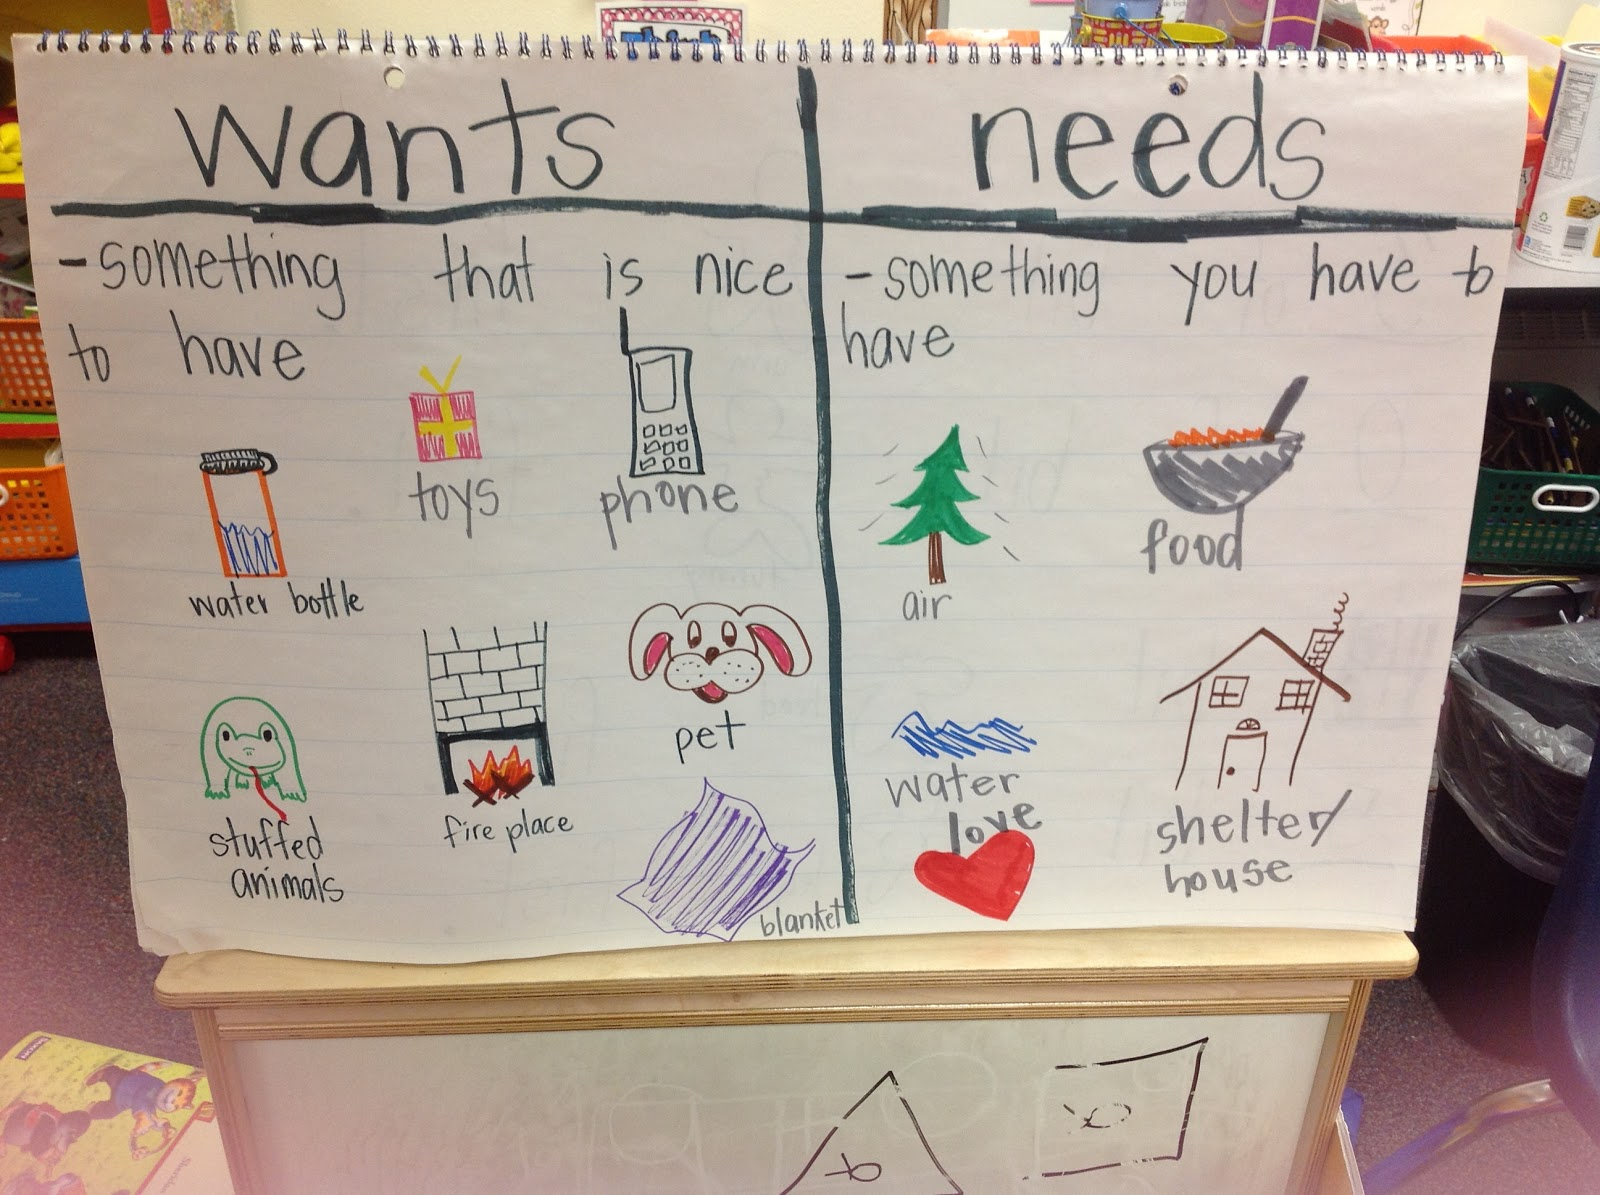 worksheet Needs And Wants Worksheets needs and wants worksheets 7503433 aks flight info